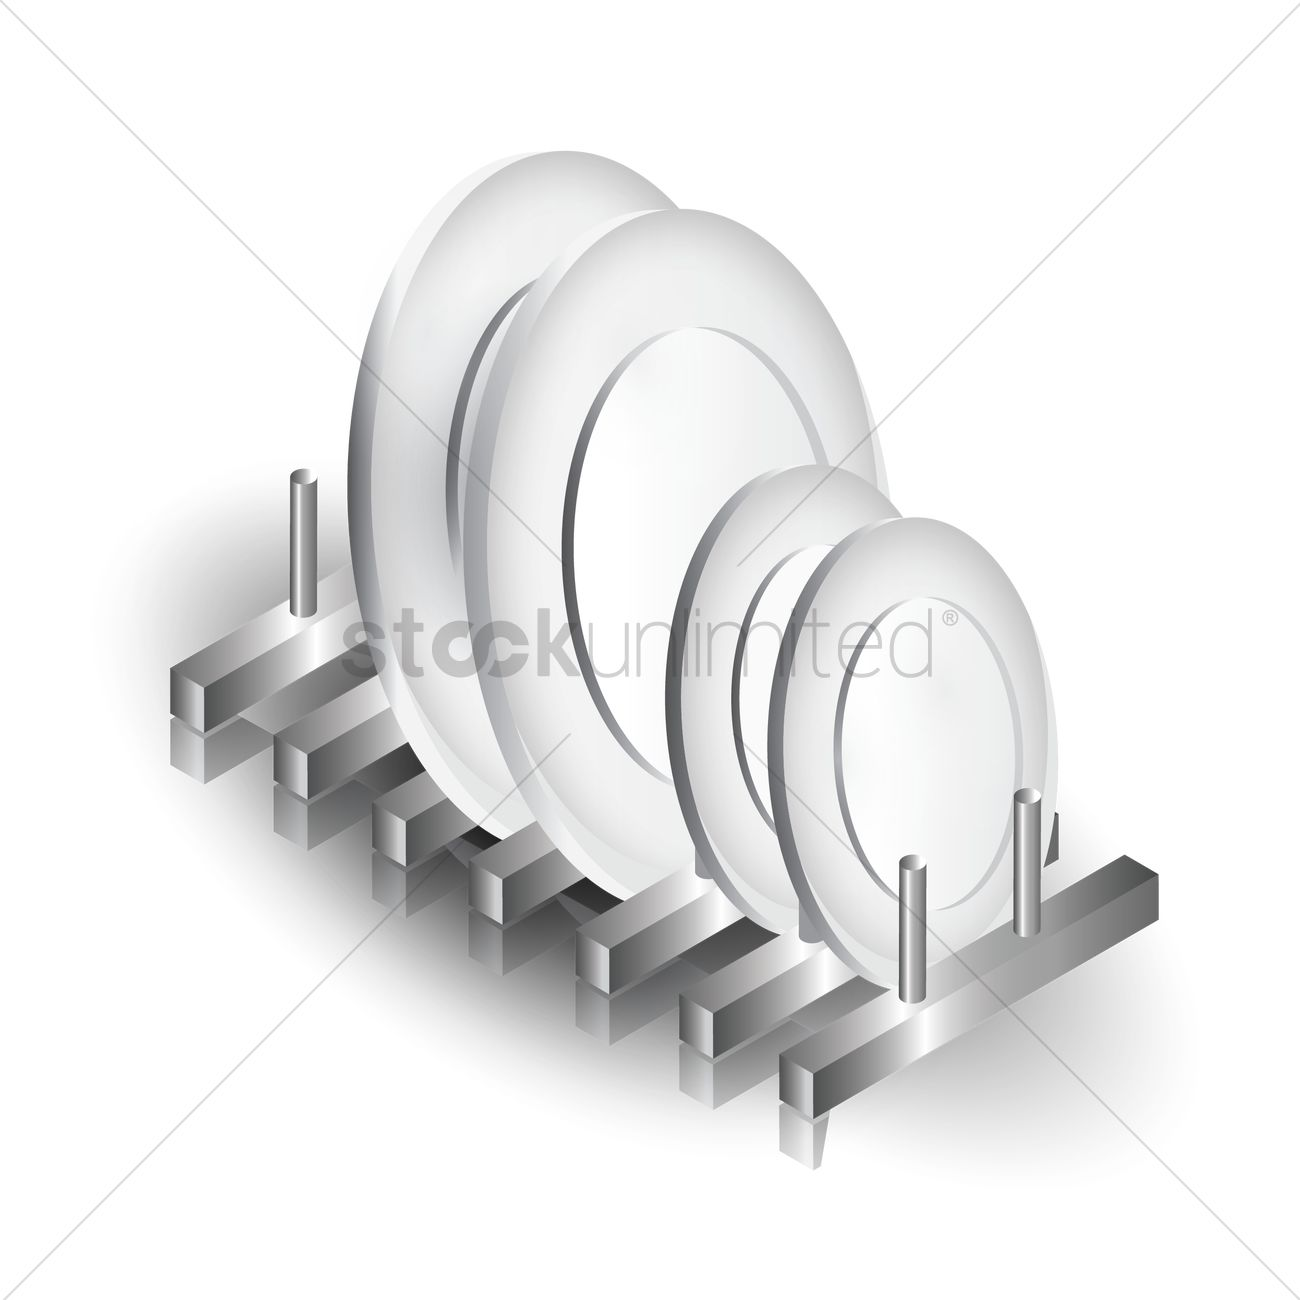 plates stand vector graphic  sc 1 st  StockUnlimited & Plates stand Vector Image - 1573112 | StockUnlimited